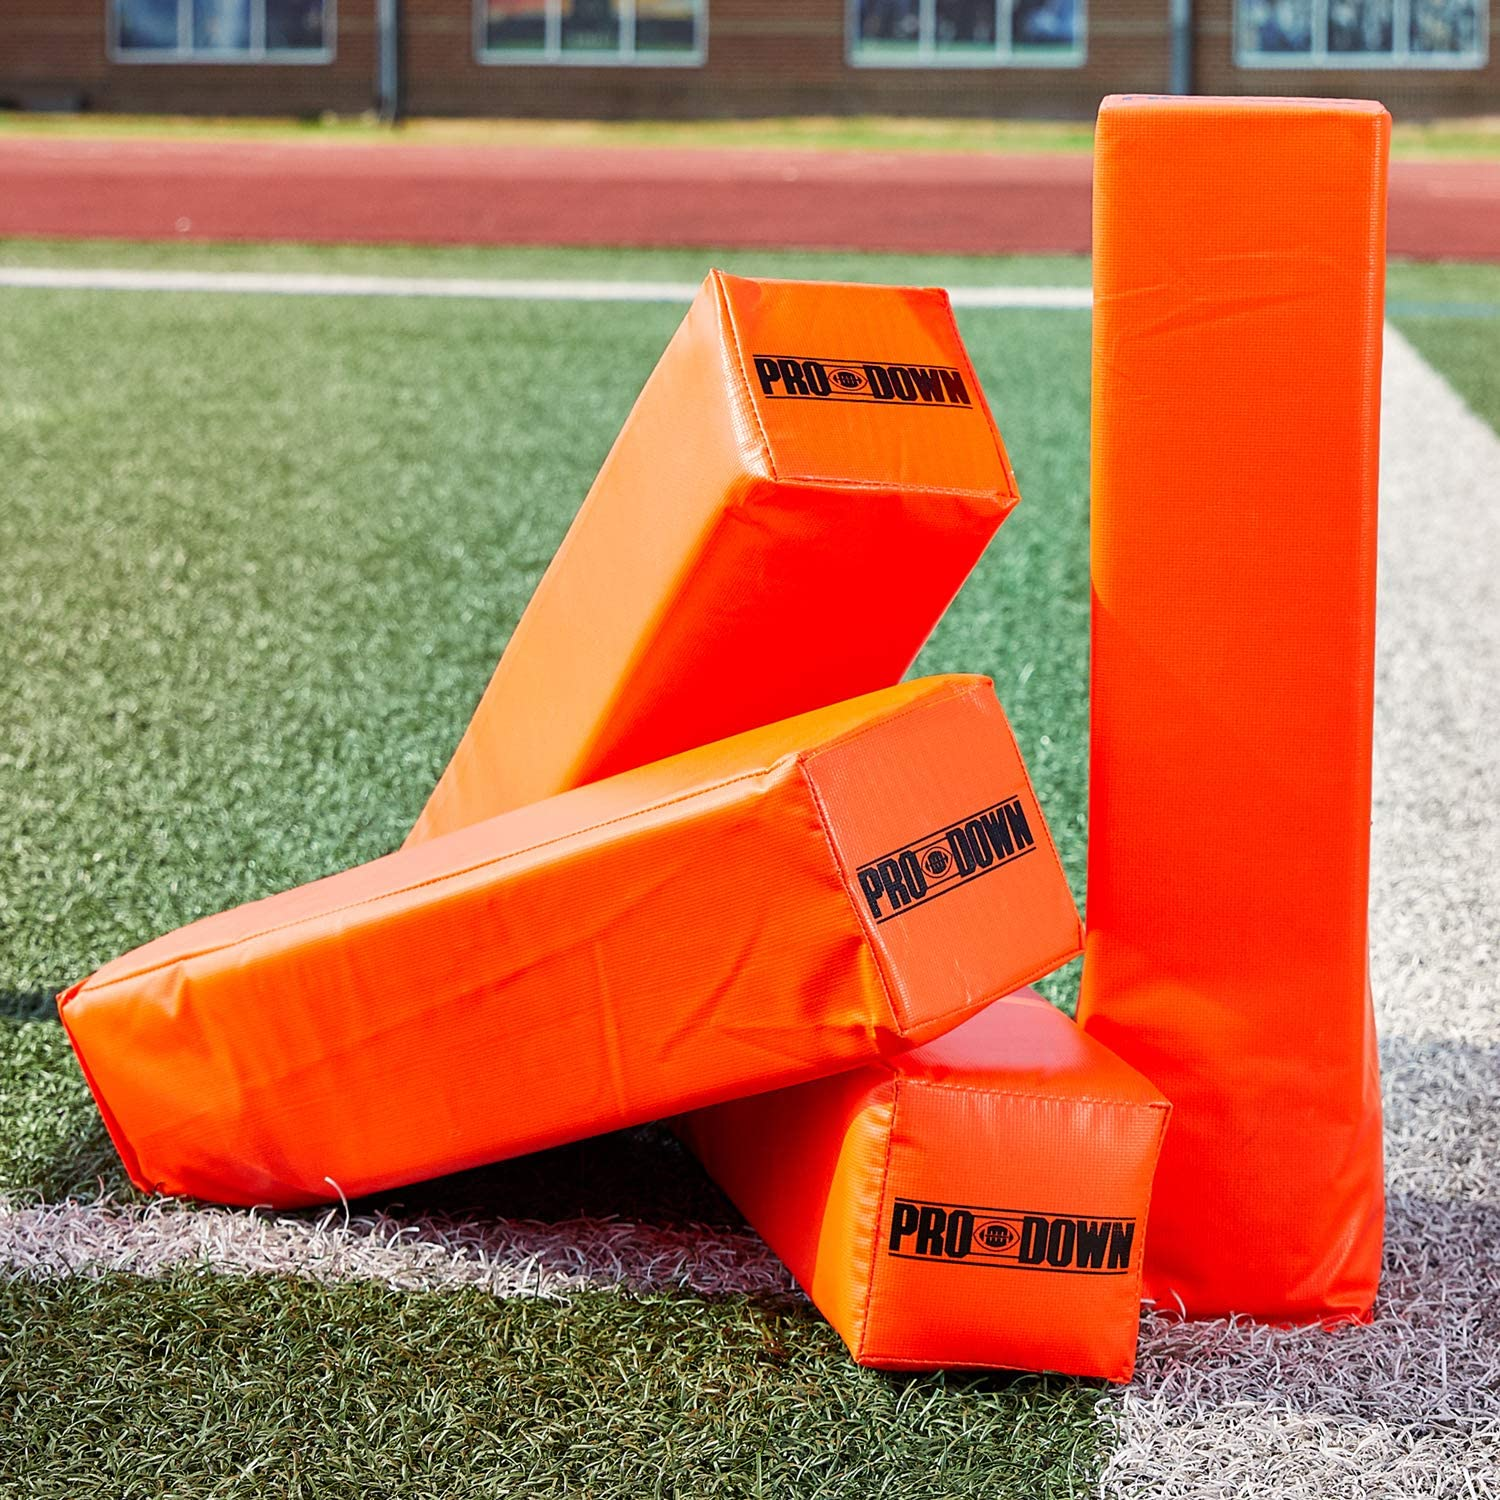 Pro Down Weighted Anchorless Pylon Set : Football Training Aids : Sports & Outdoors